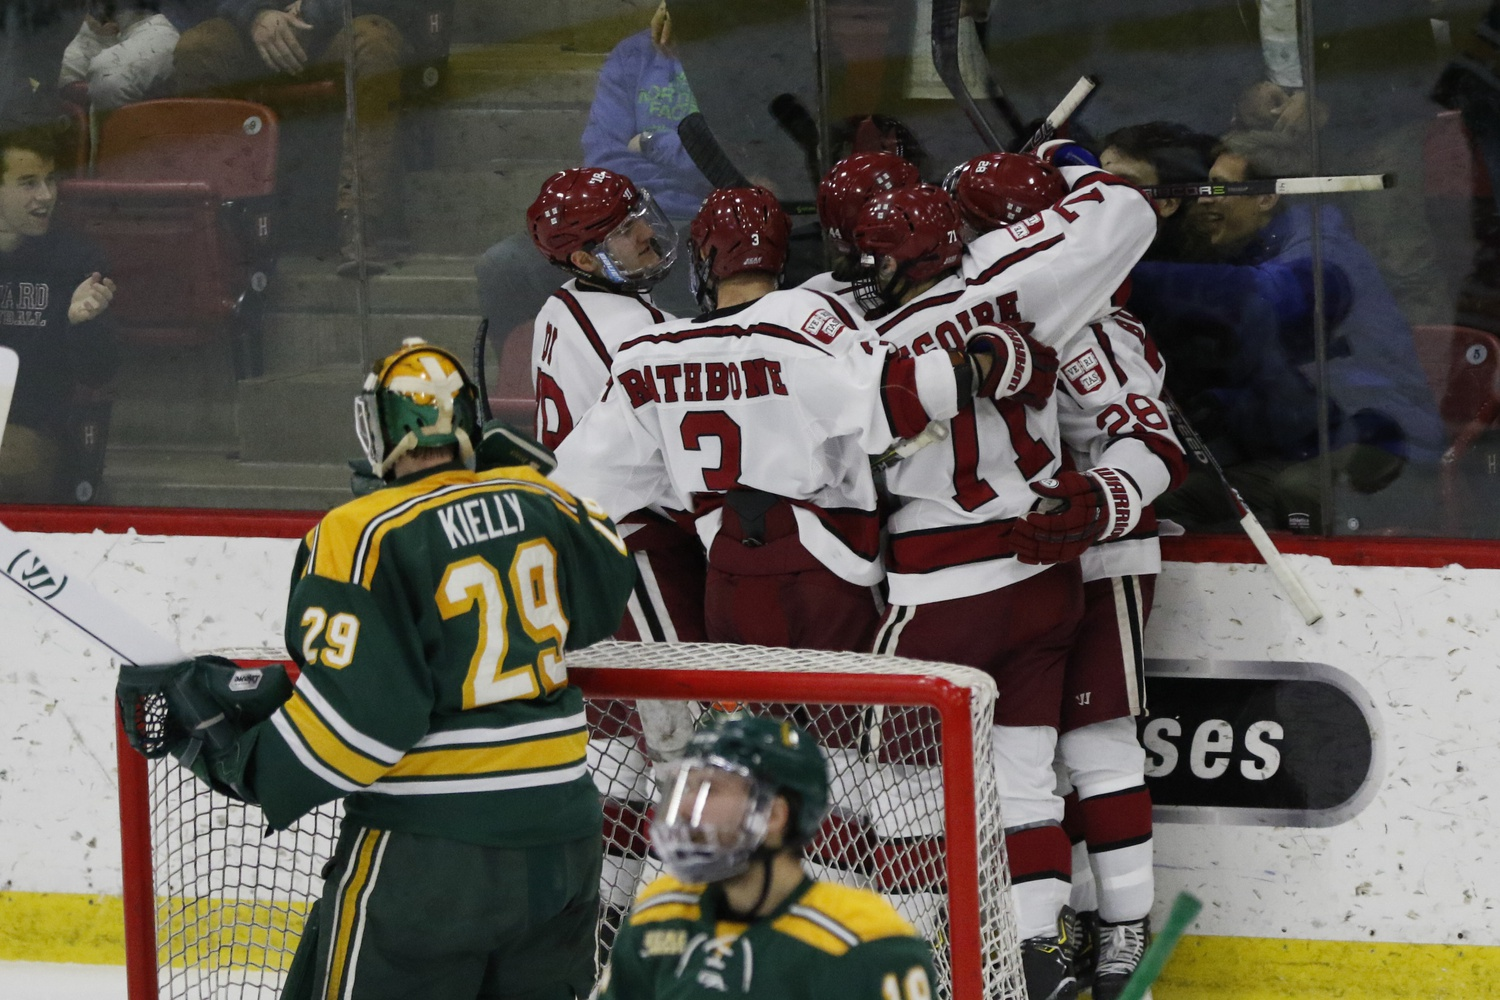 The Golden Knights have proven their effectiveness even when facing a deficit against the Crimson, so Harvard can never celebrate too soon.